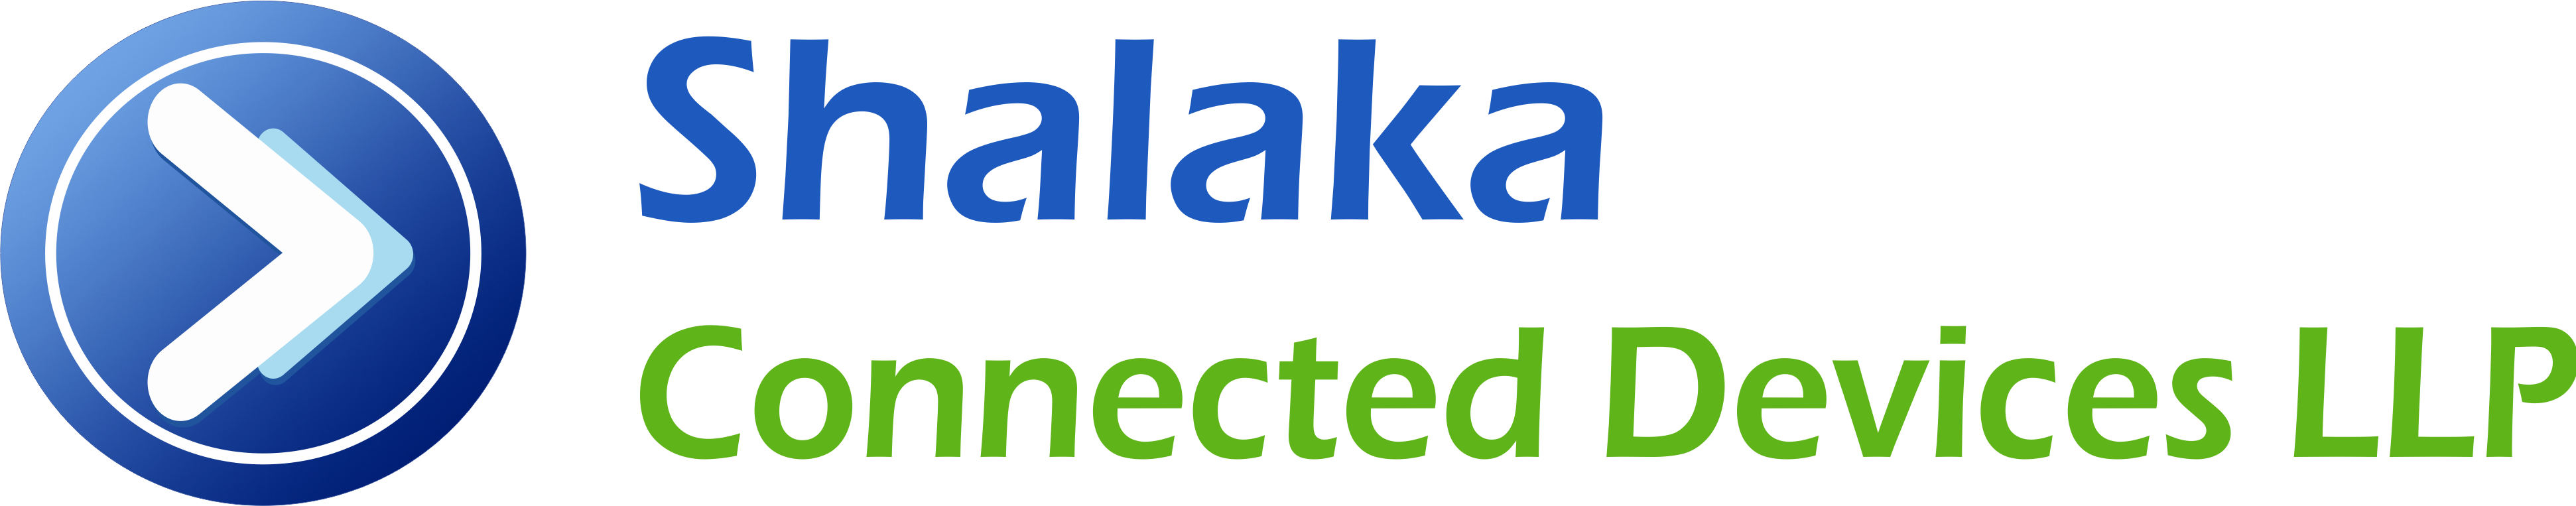 Shalaka Management Services